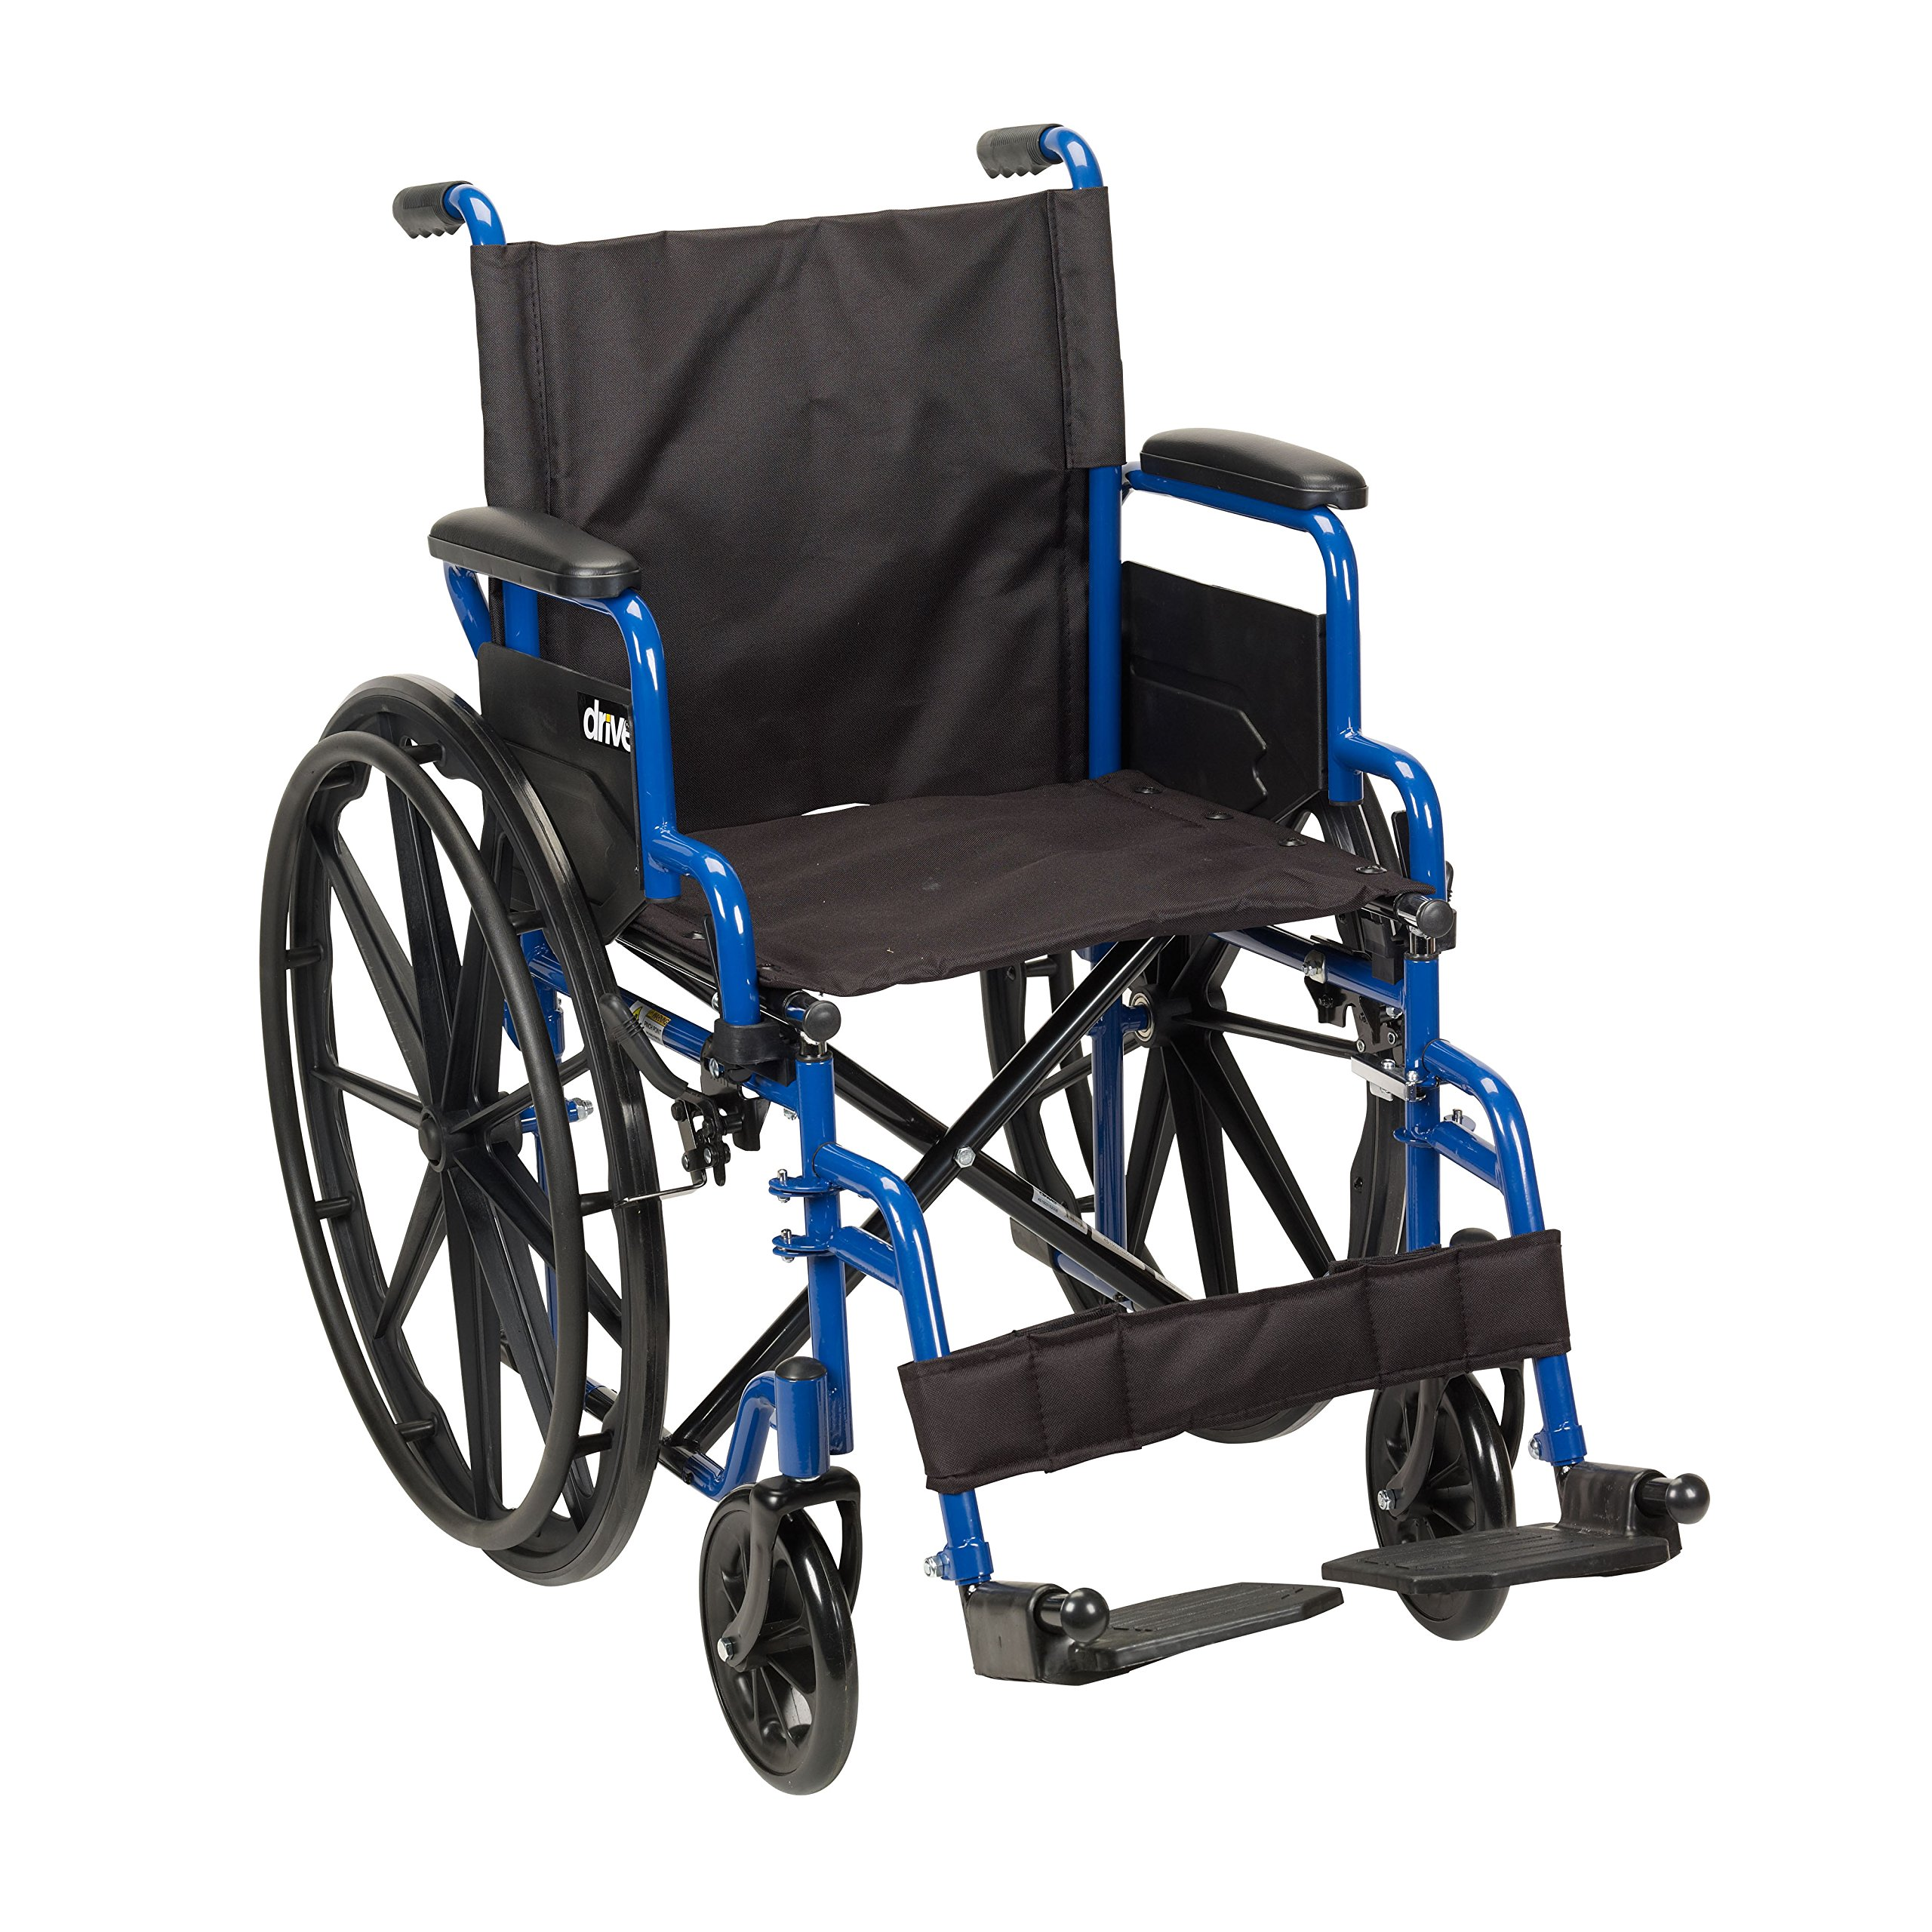 Drive Medical Blue Streak Wheelchair with Flip Back Desk Arms, Swing Away Footrests, 18'' Seat by Drive Medical